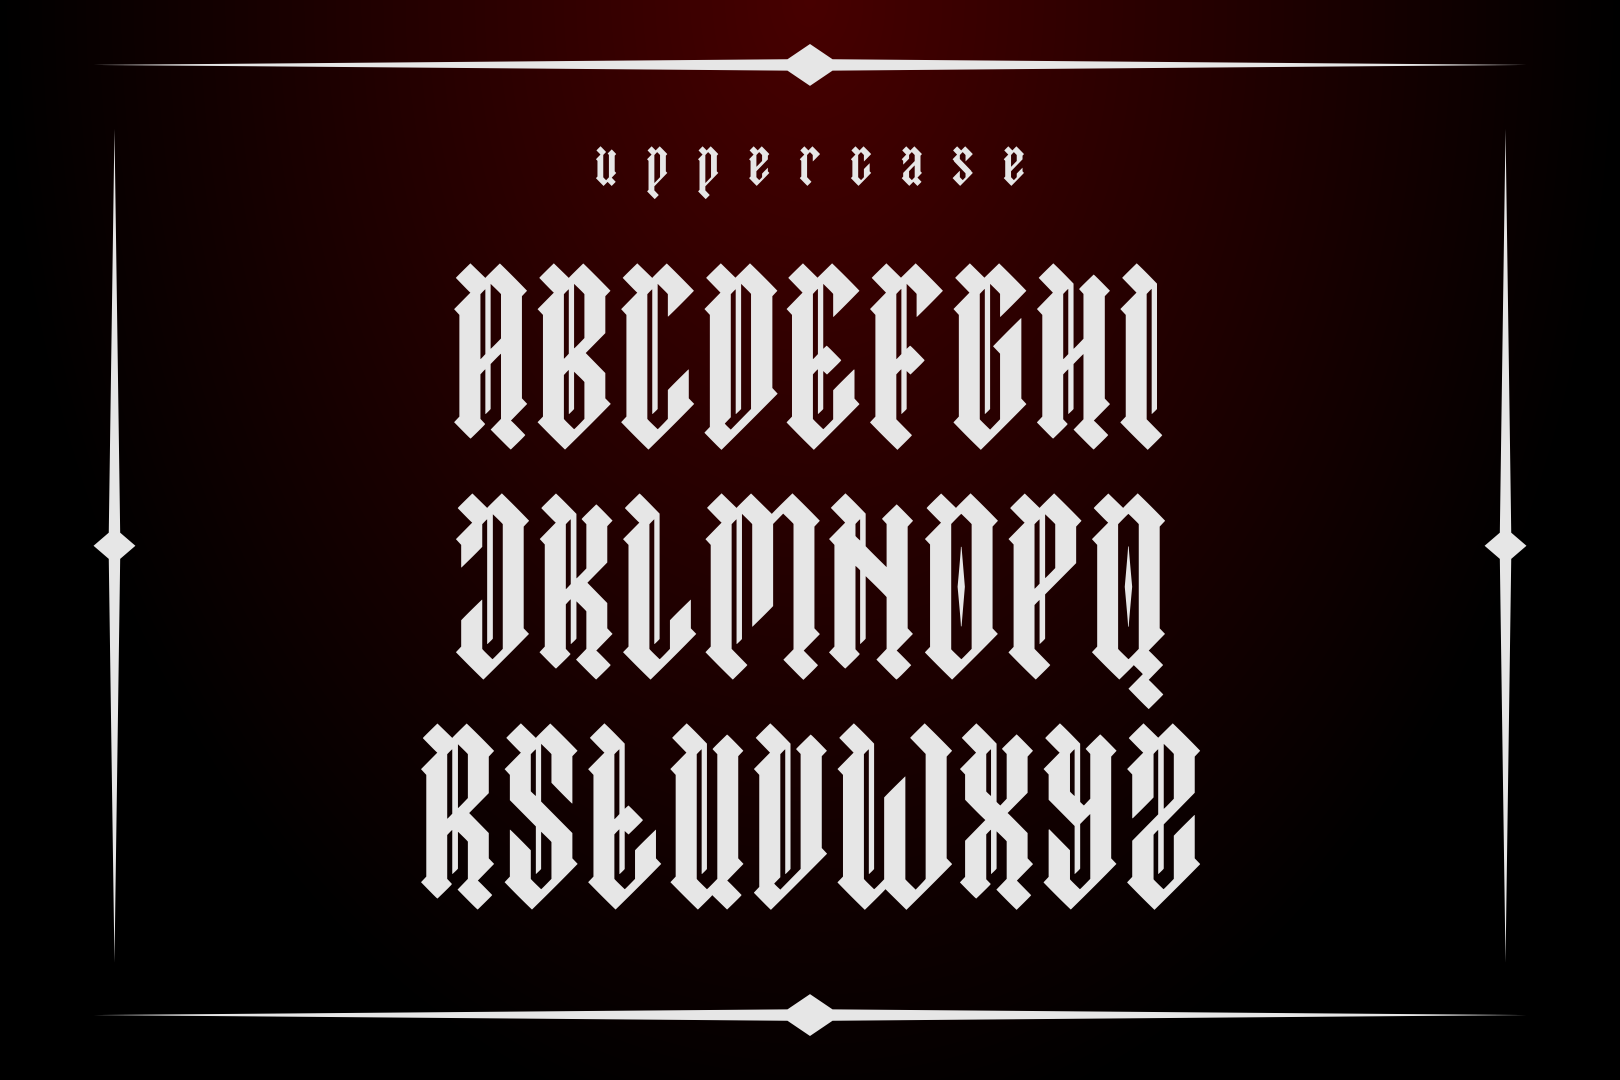 Asmodeus - Blackletter example image 2